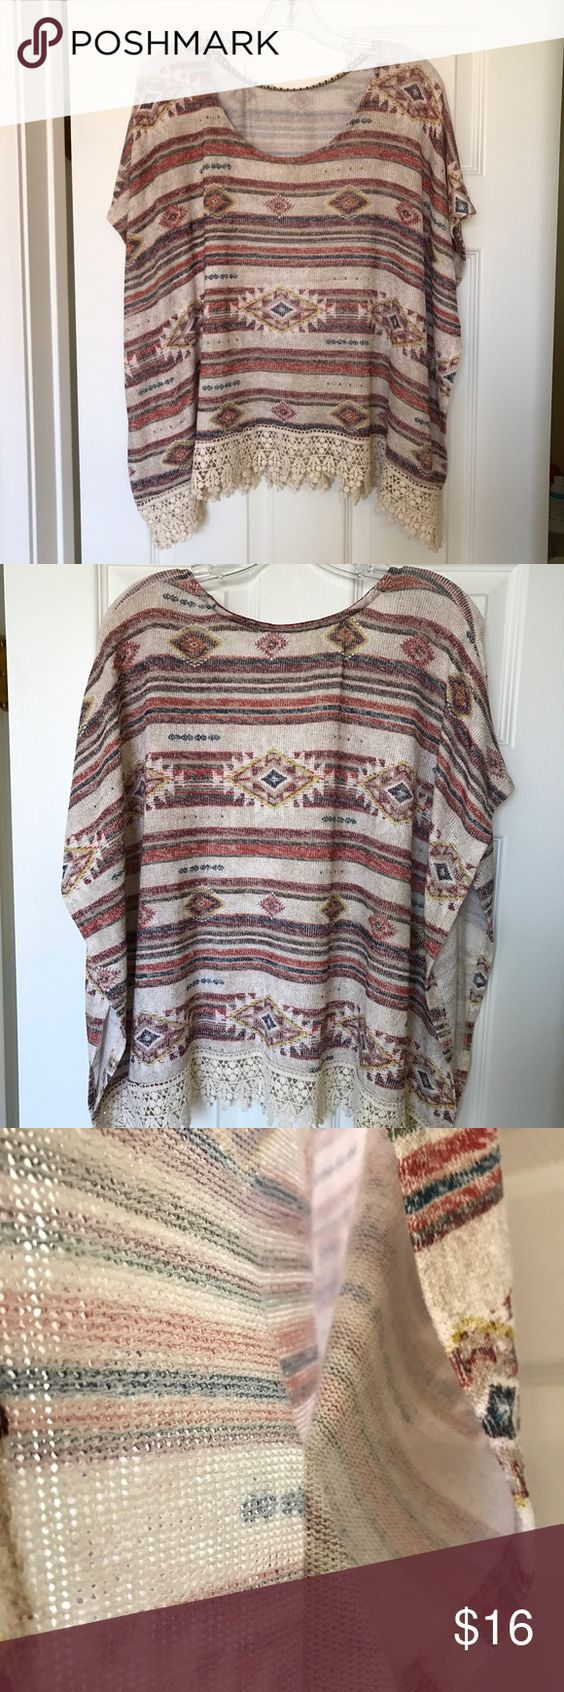 Cute Boho Sweater Nice colors and lightweight. Cut tag off but bought at Macy's Macy's Tops Sweatshirts & Hoodies